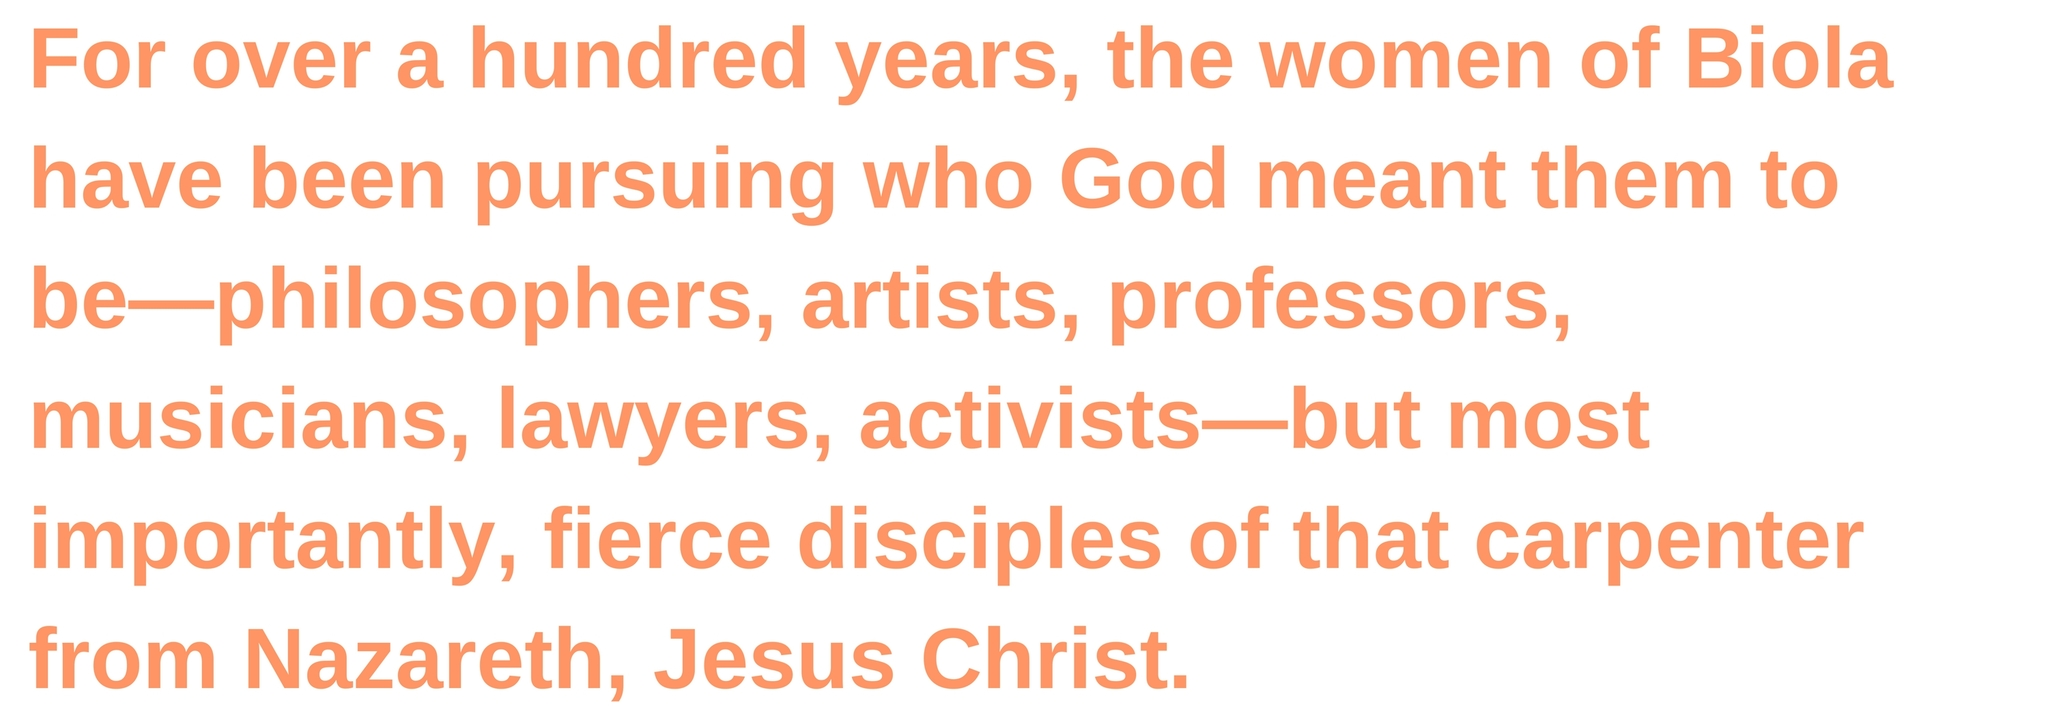 For over a hundred years, the women of Biola have been pursuing who God meant them to be—philosophers, artists, professors, musicians, lawyers, activists—but most importantly, fierce disciples of that carpenter from Nazareth, Jesus Christ.